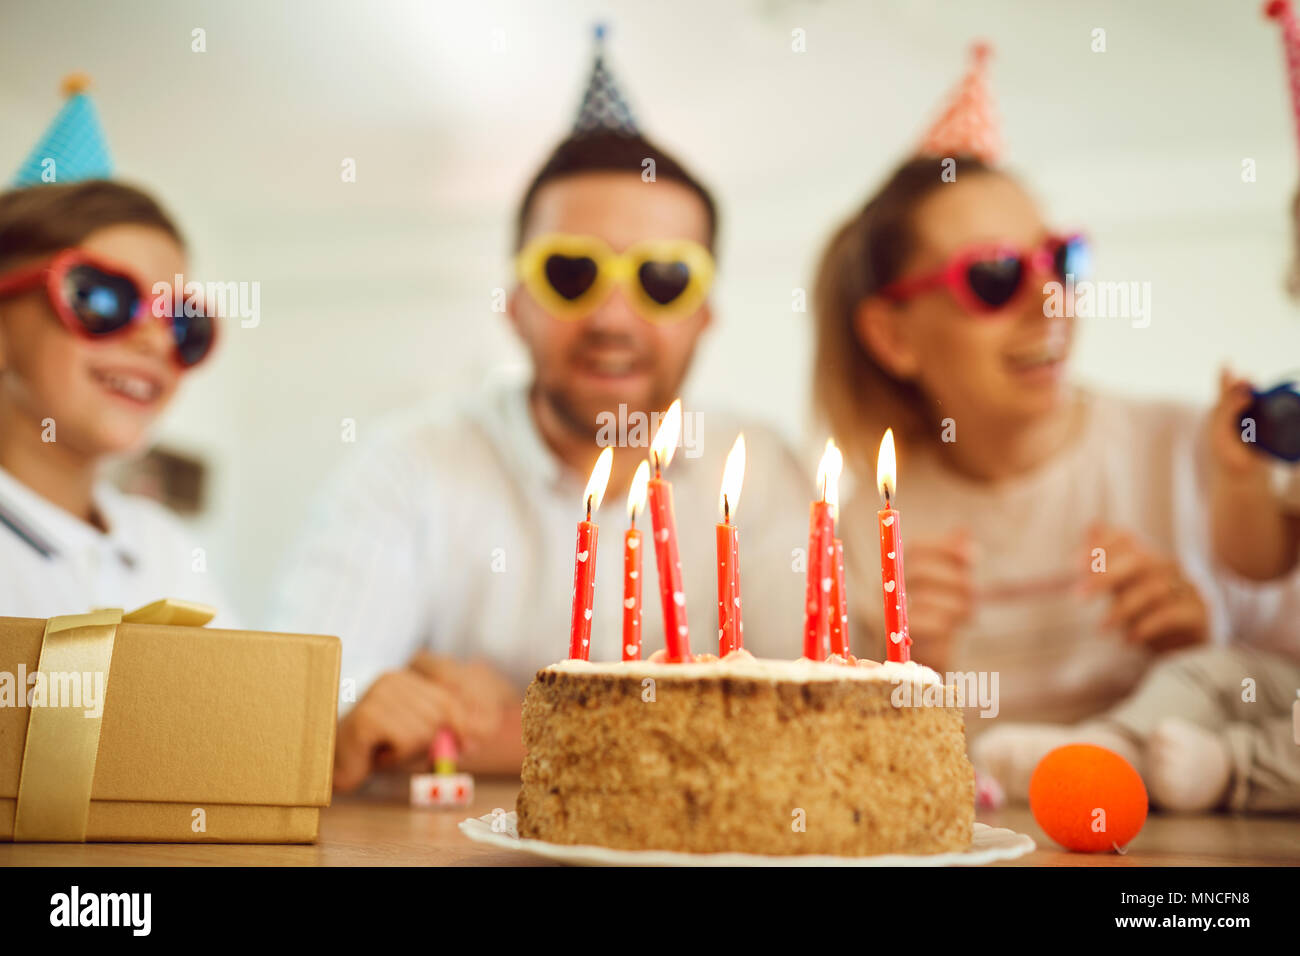 Birthday cake birthday with candles. - Stock Image